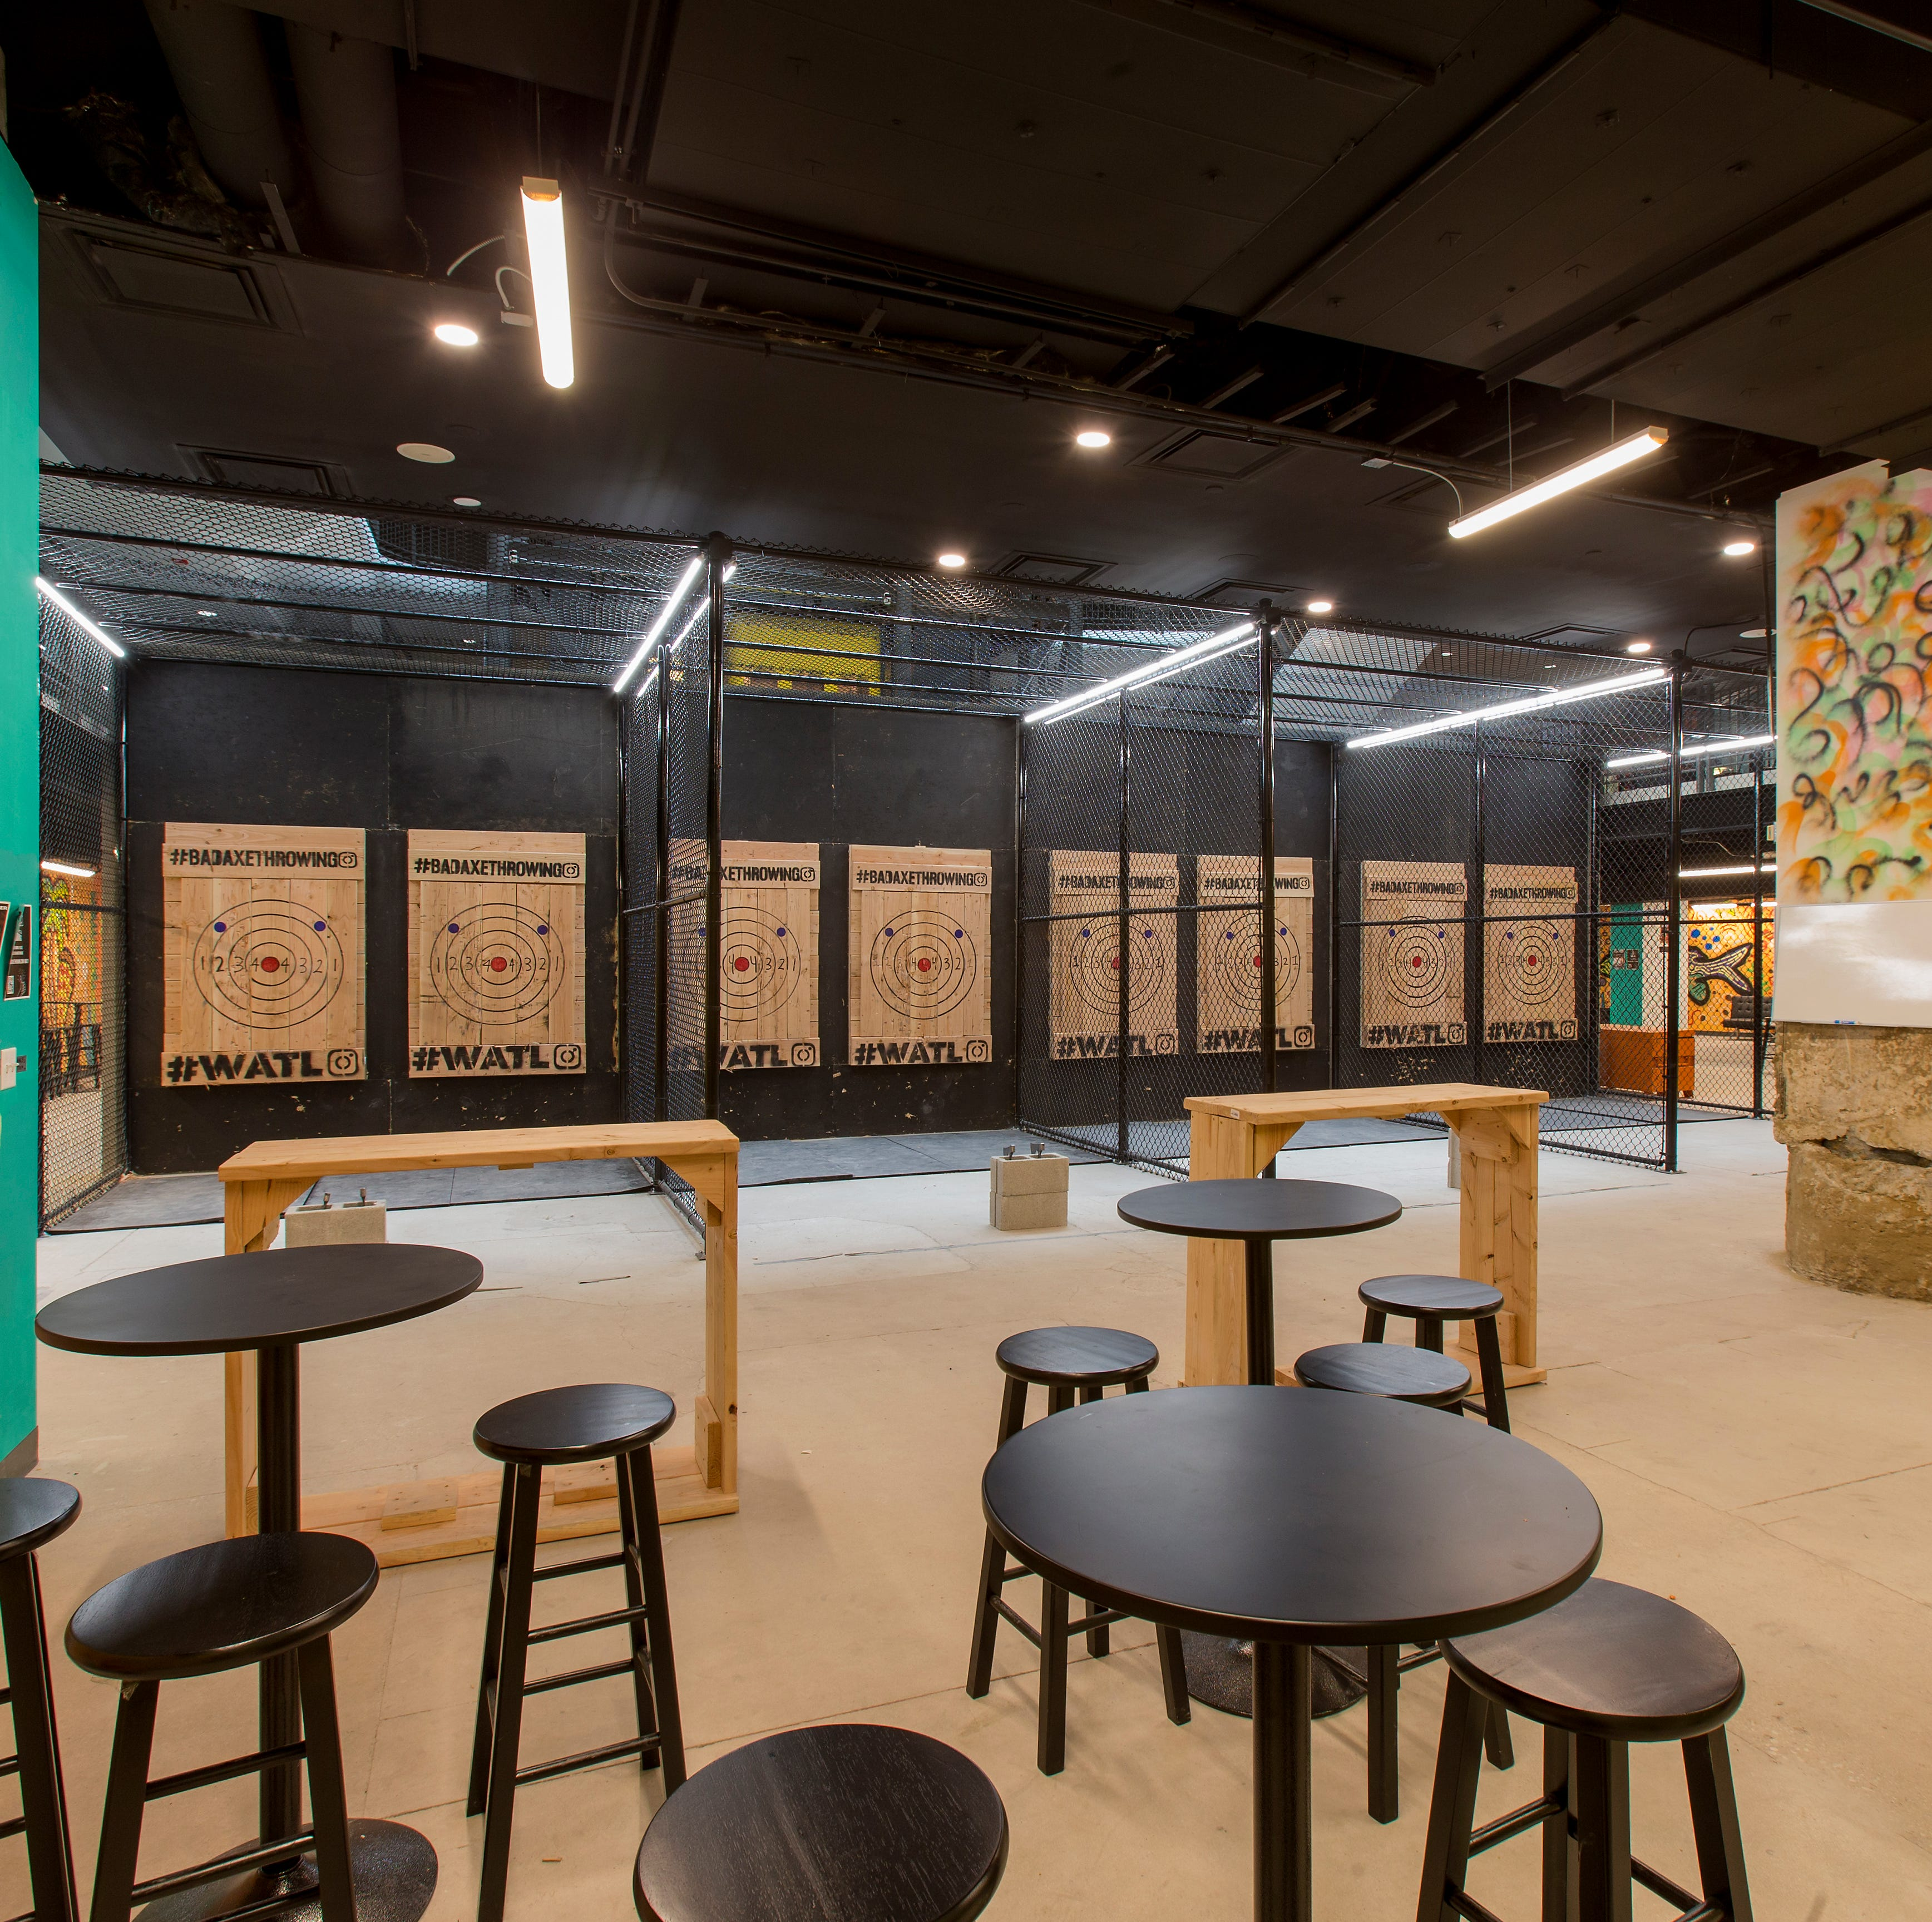 Like smashing stuff? Throwing axes? These 3 new bars will crush it